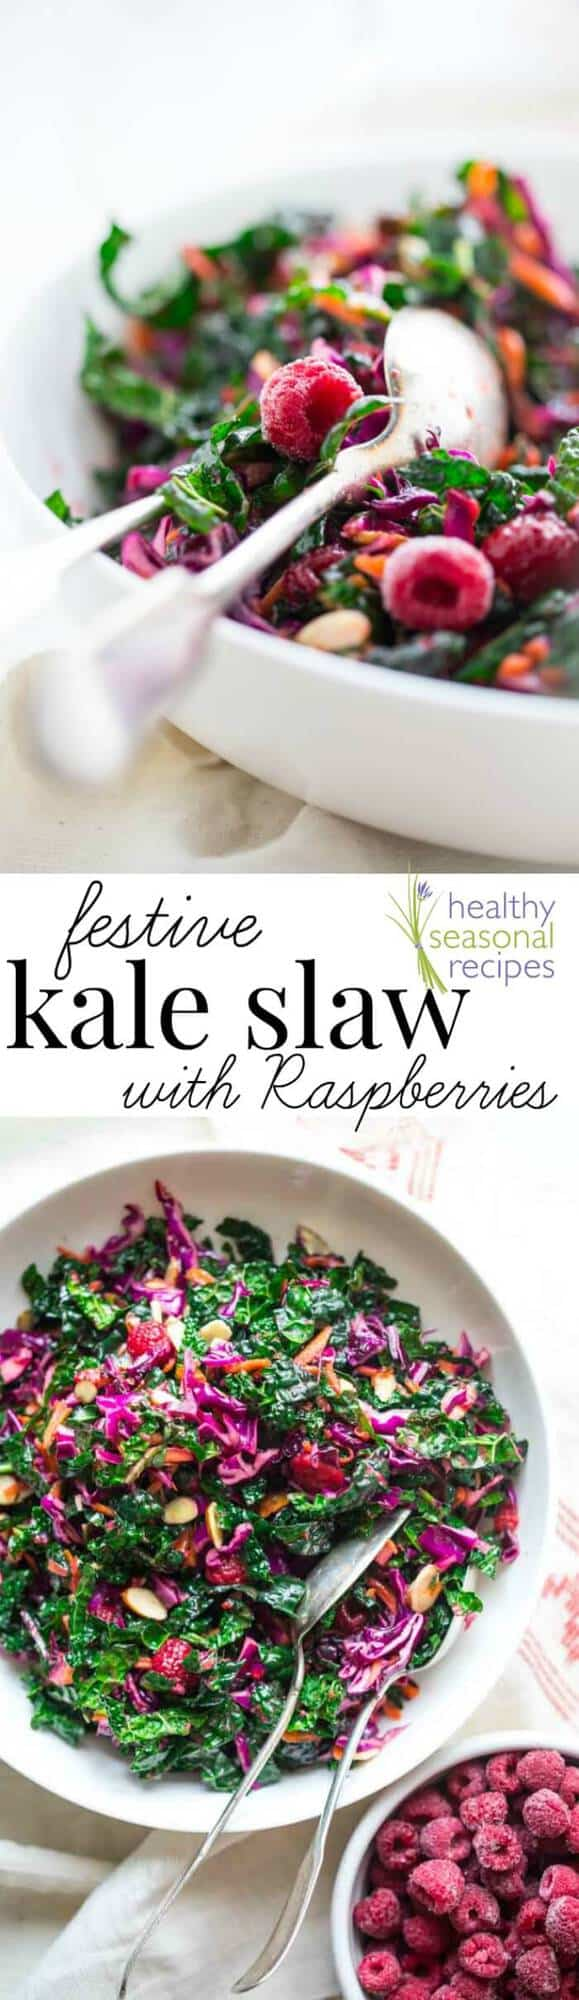 A bowl of salad, with Kale slaw with text